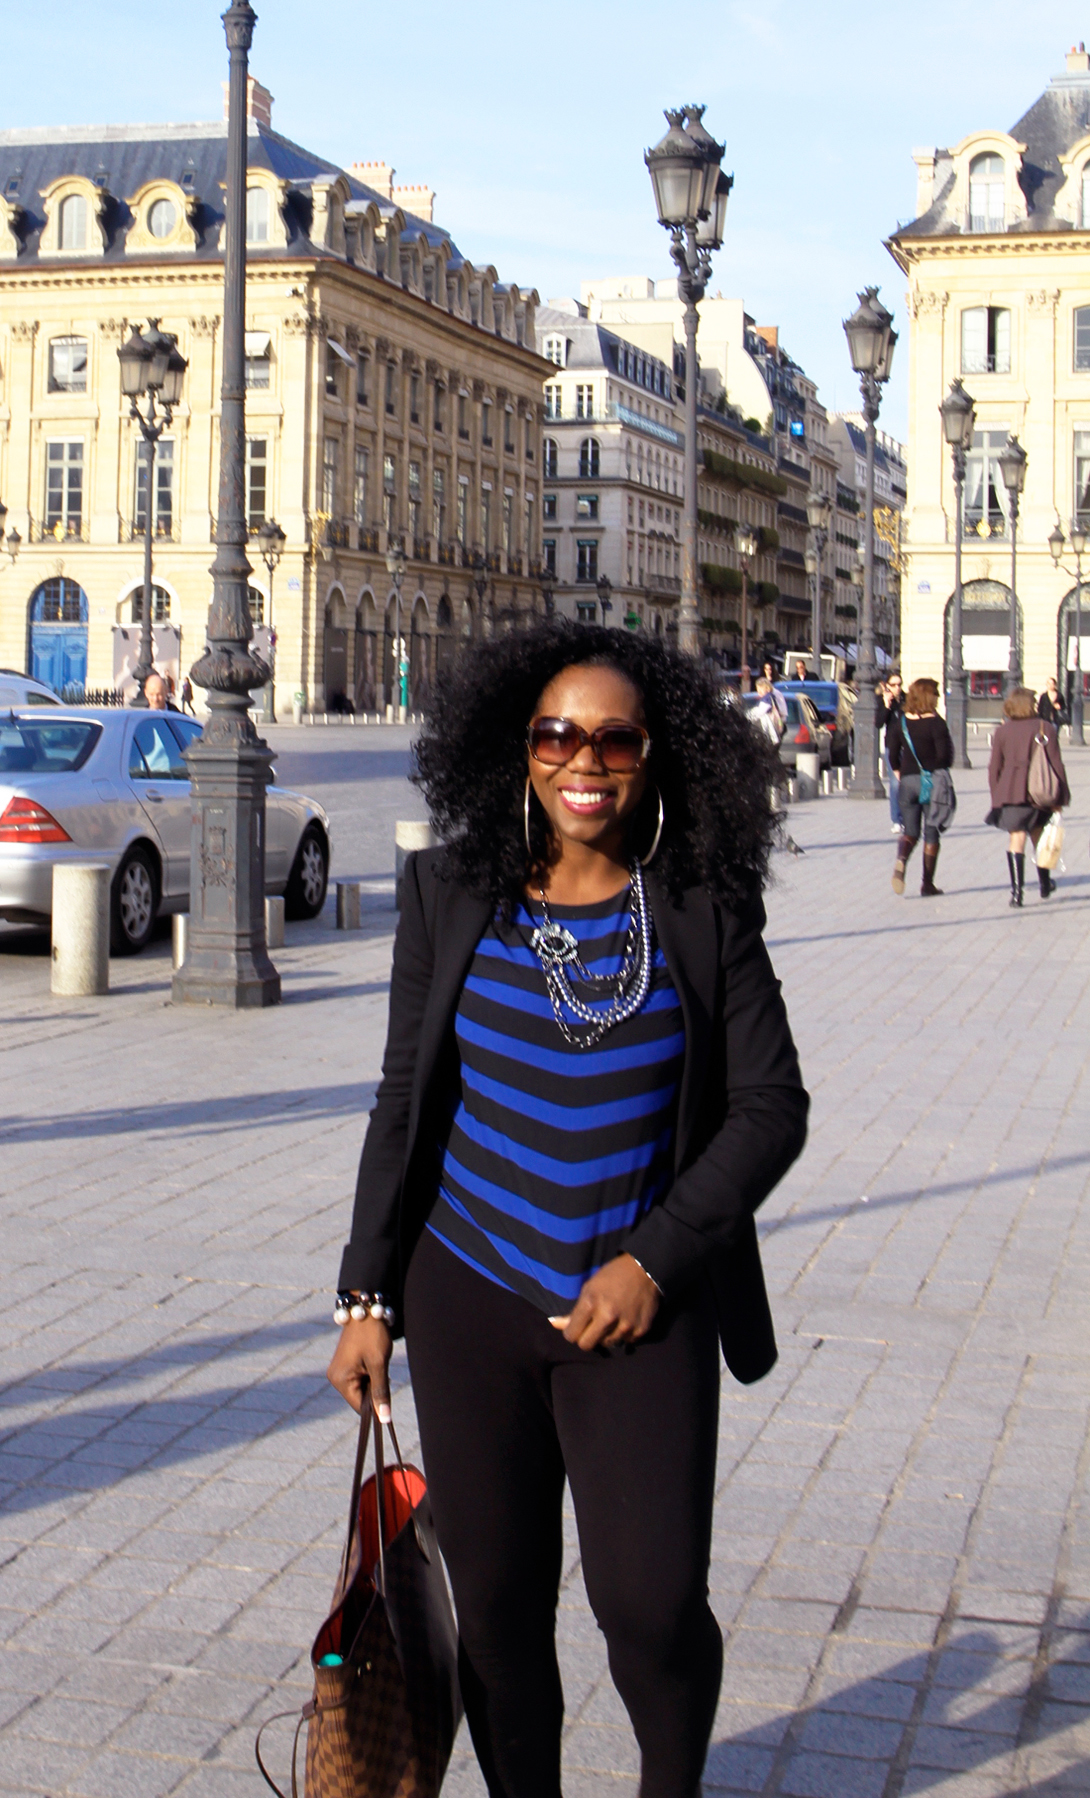 Strolling along Place Vendome